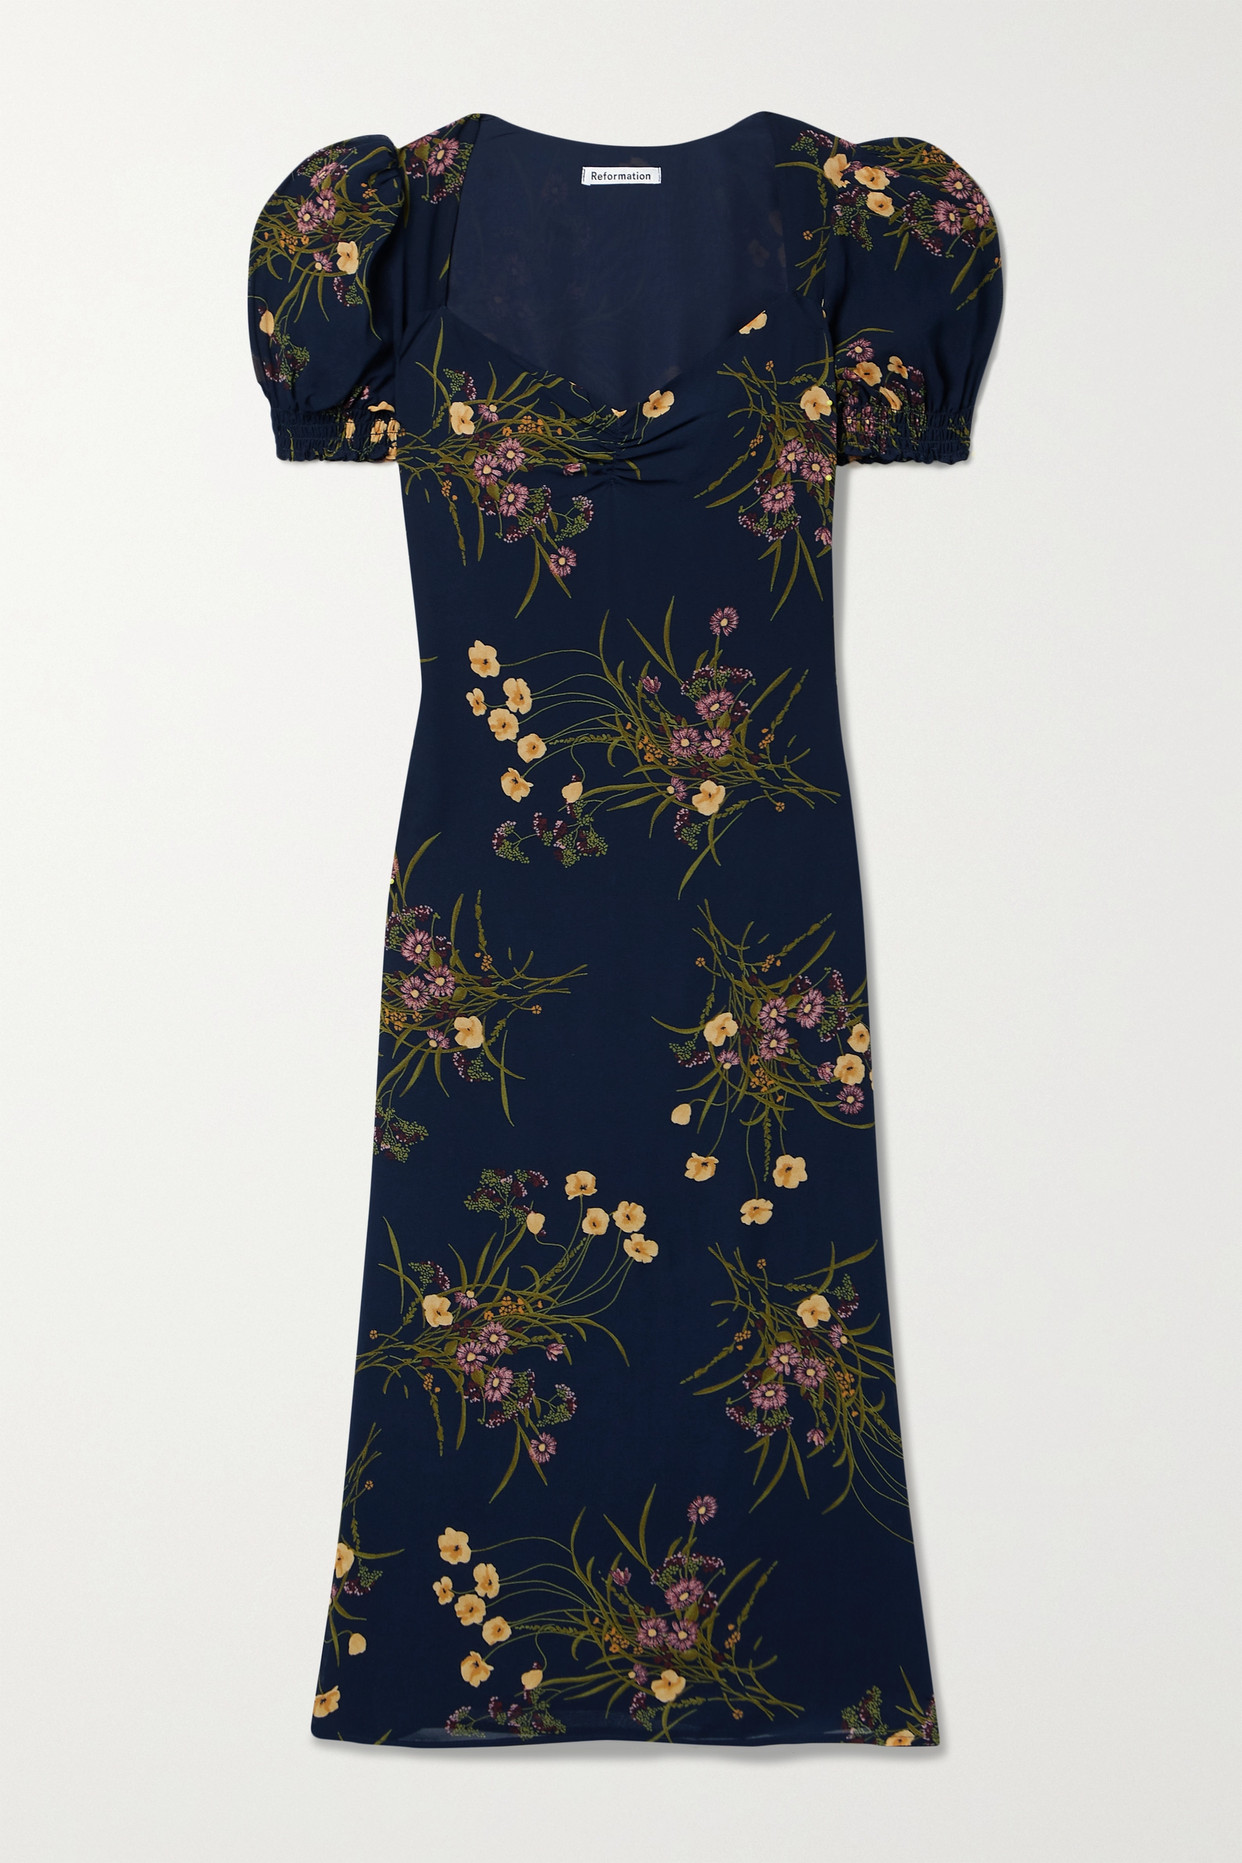 Reformation Luciana Lace-up Floral-print Crepe Midi Dress In Blue